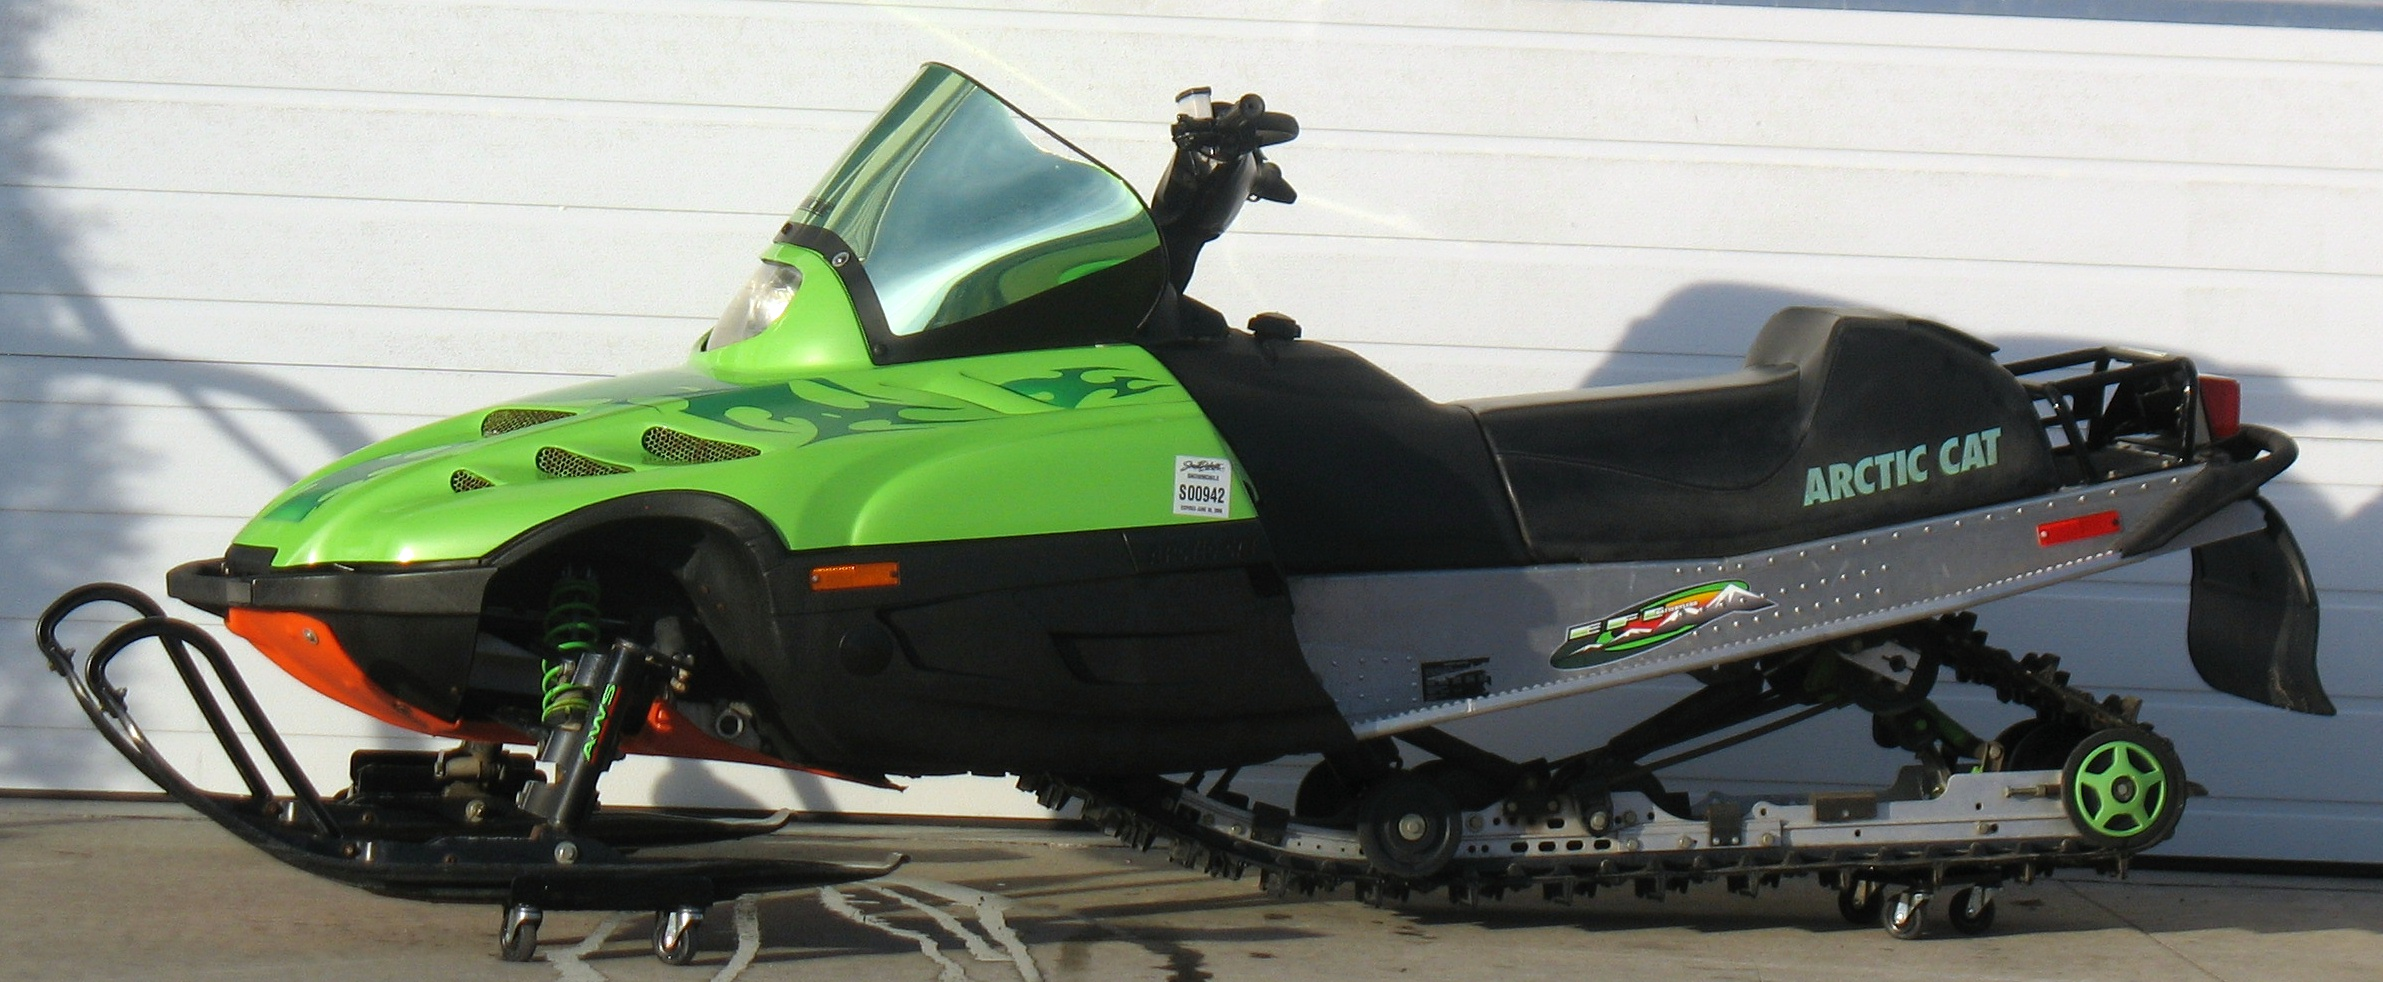 The Owner Of This One Has 3 Sleds That They No Longer Ride 99 Powder Special And 05 M 7 Is Decent Condition For Year With A